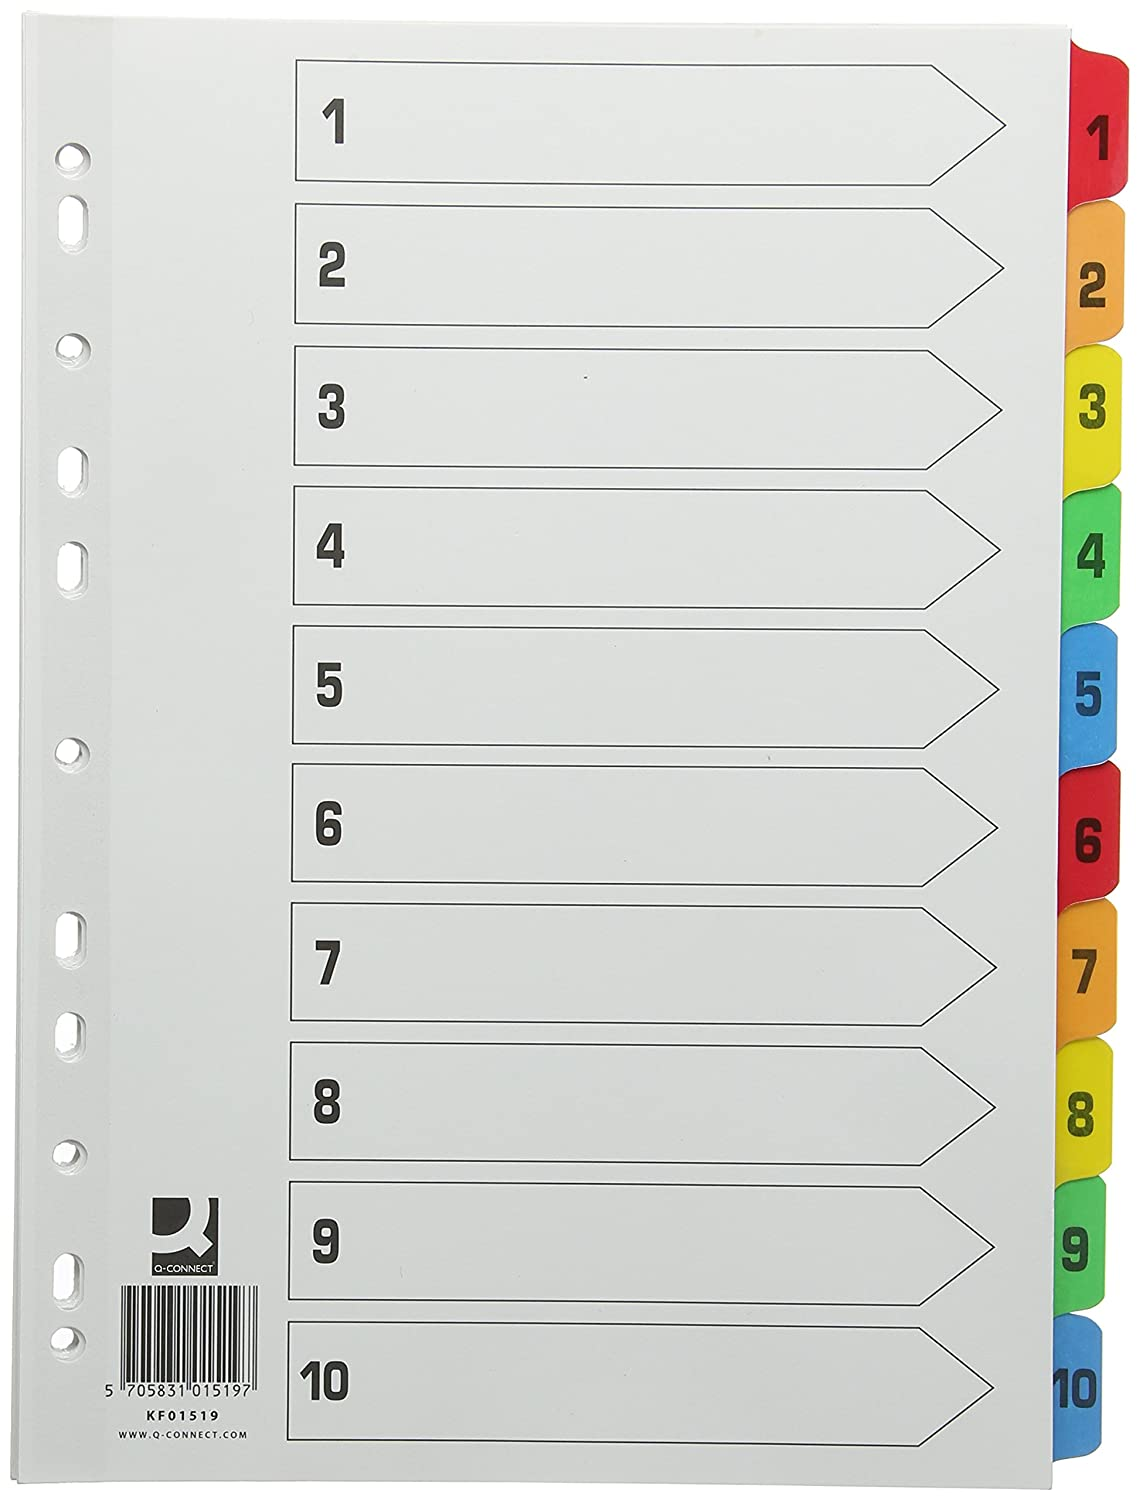 Amazon.com : Q-Connect Index Reinforced Multi-Colour 1-10 Numbered Tabs KF01519 : Office Products